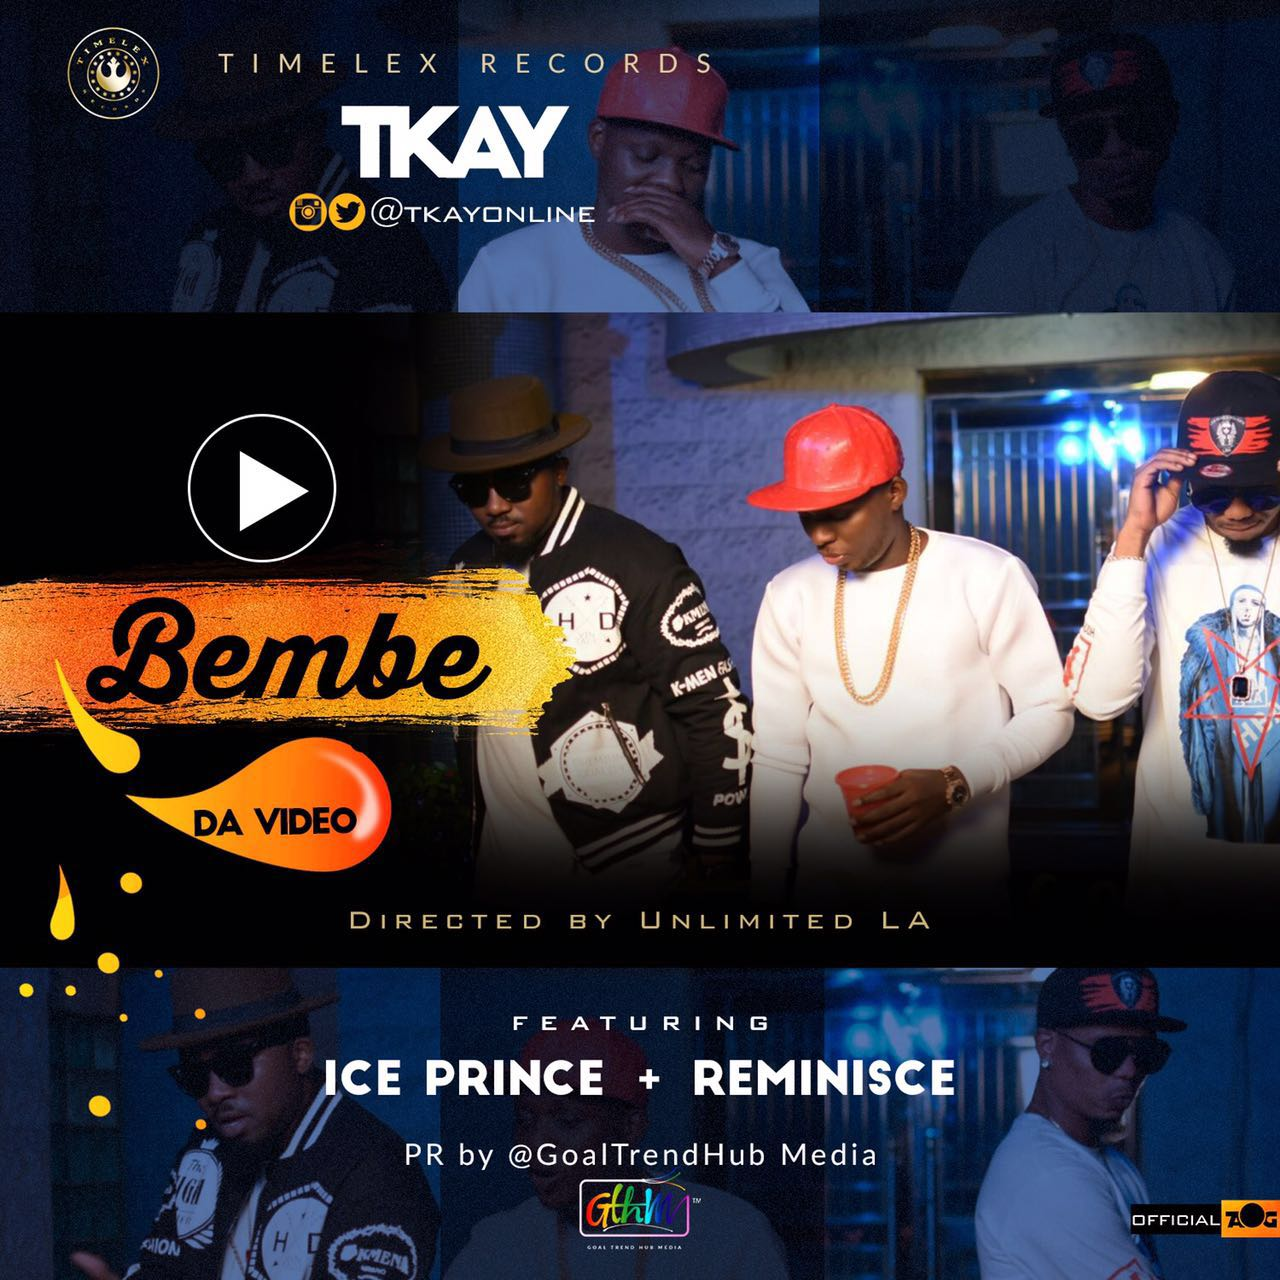 VIDEO: Tkay ft. Ice Prince x Reminisce - Bembe